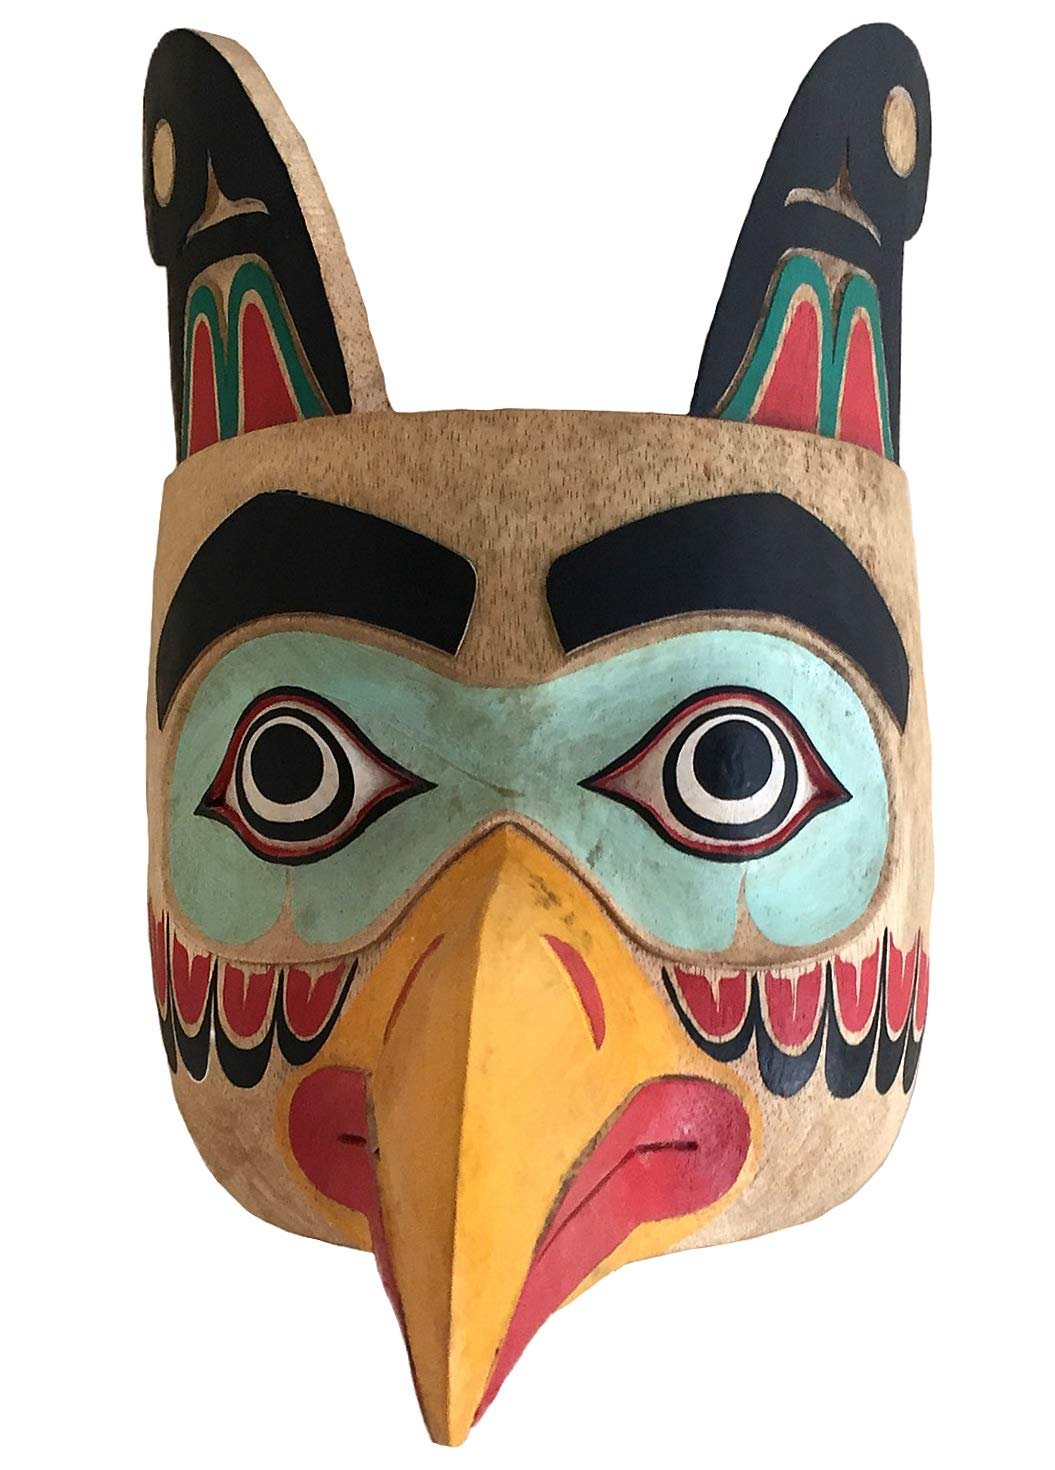 Premium Quality OMA Solid Wood Hand Crafted Eagle Warrior Protection Mask Wall Hanging Decor Native American Northwest Style